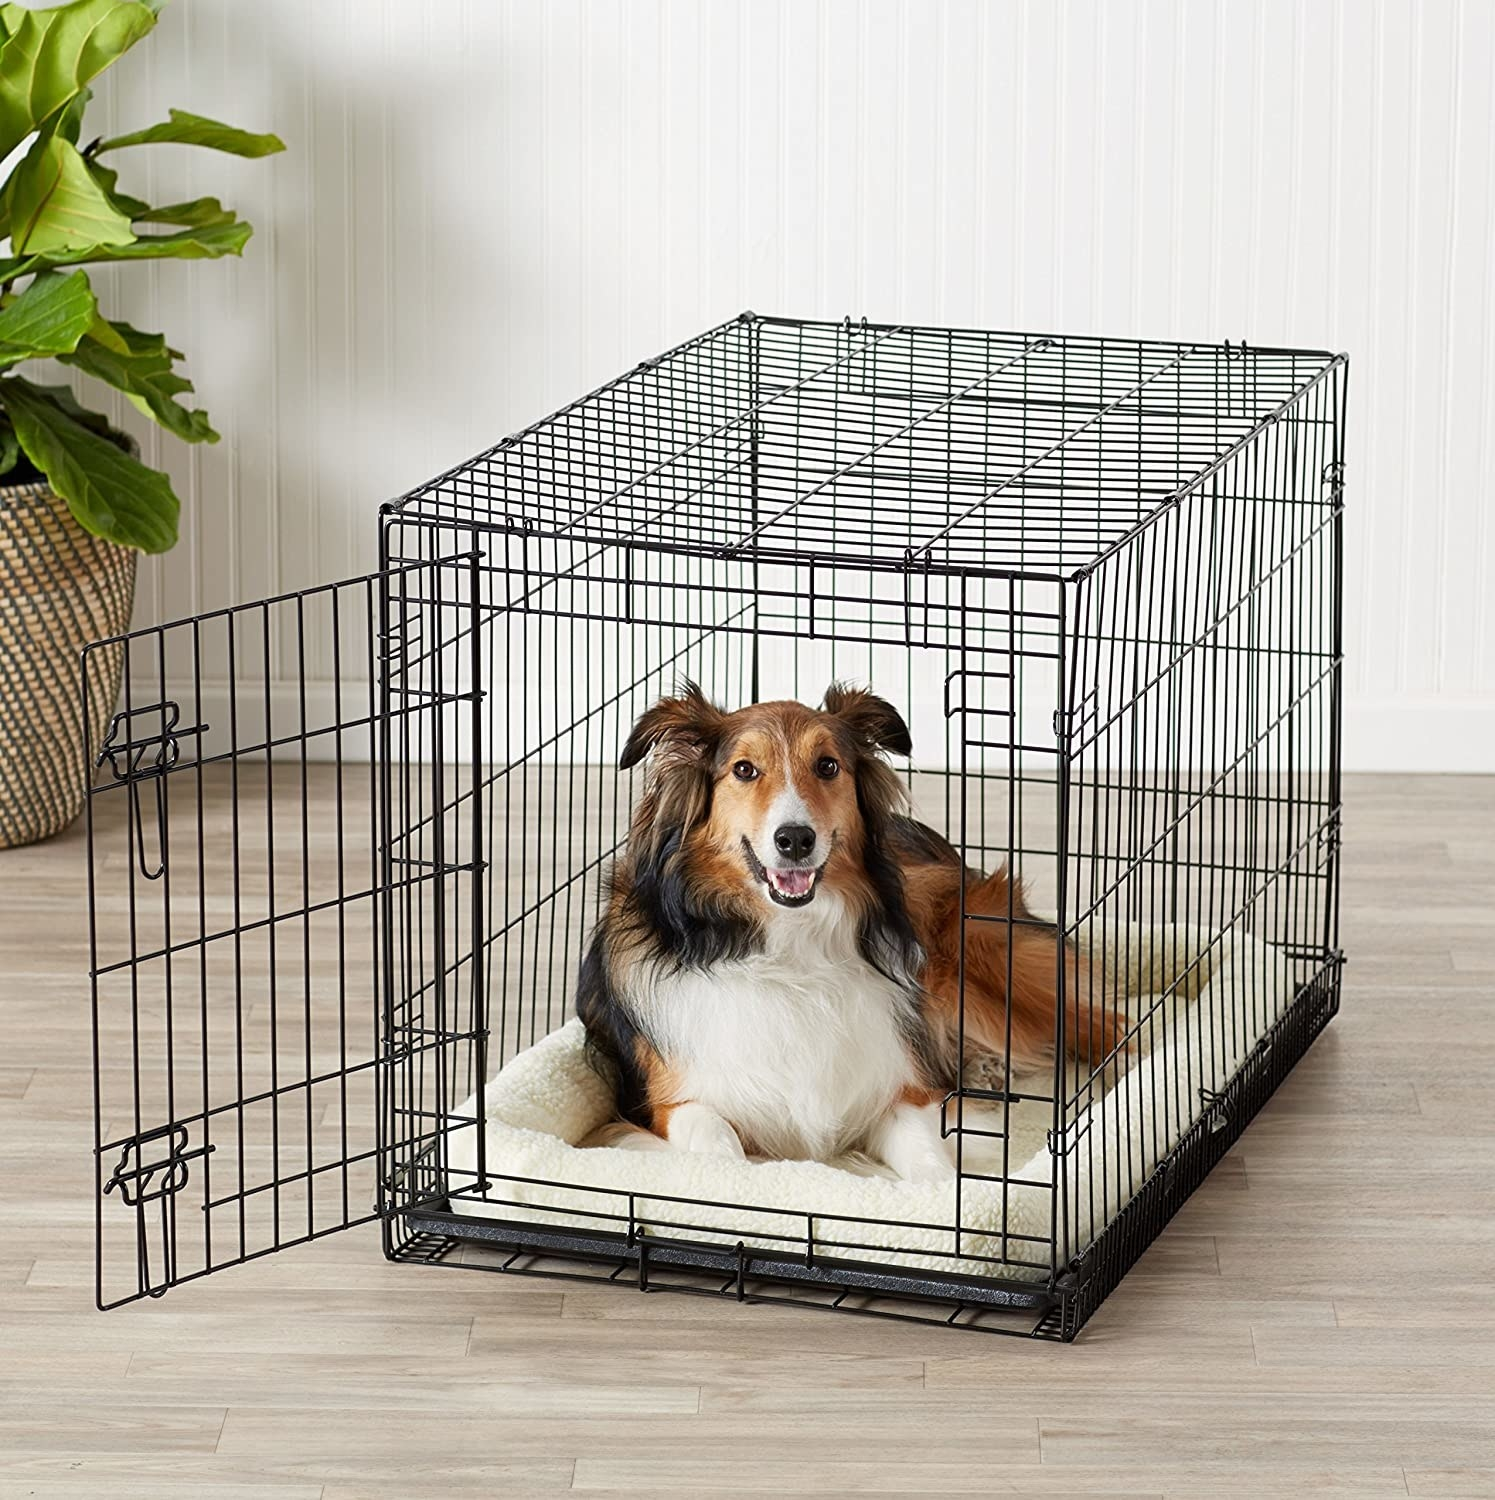 A collie in the crate